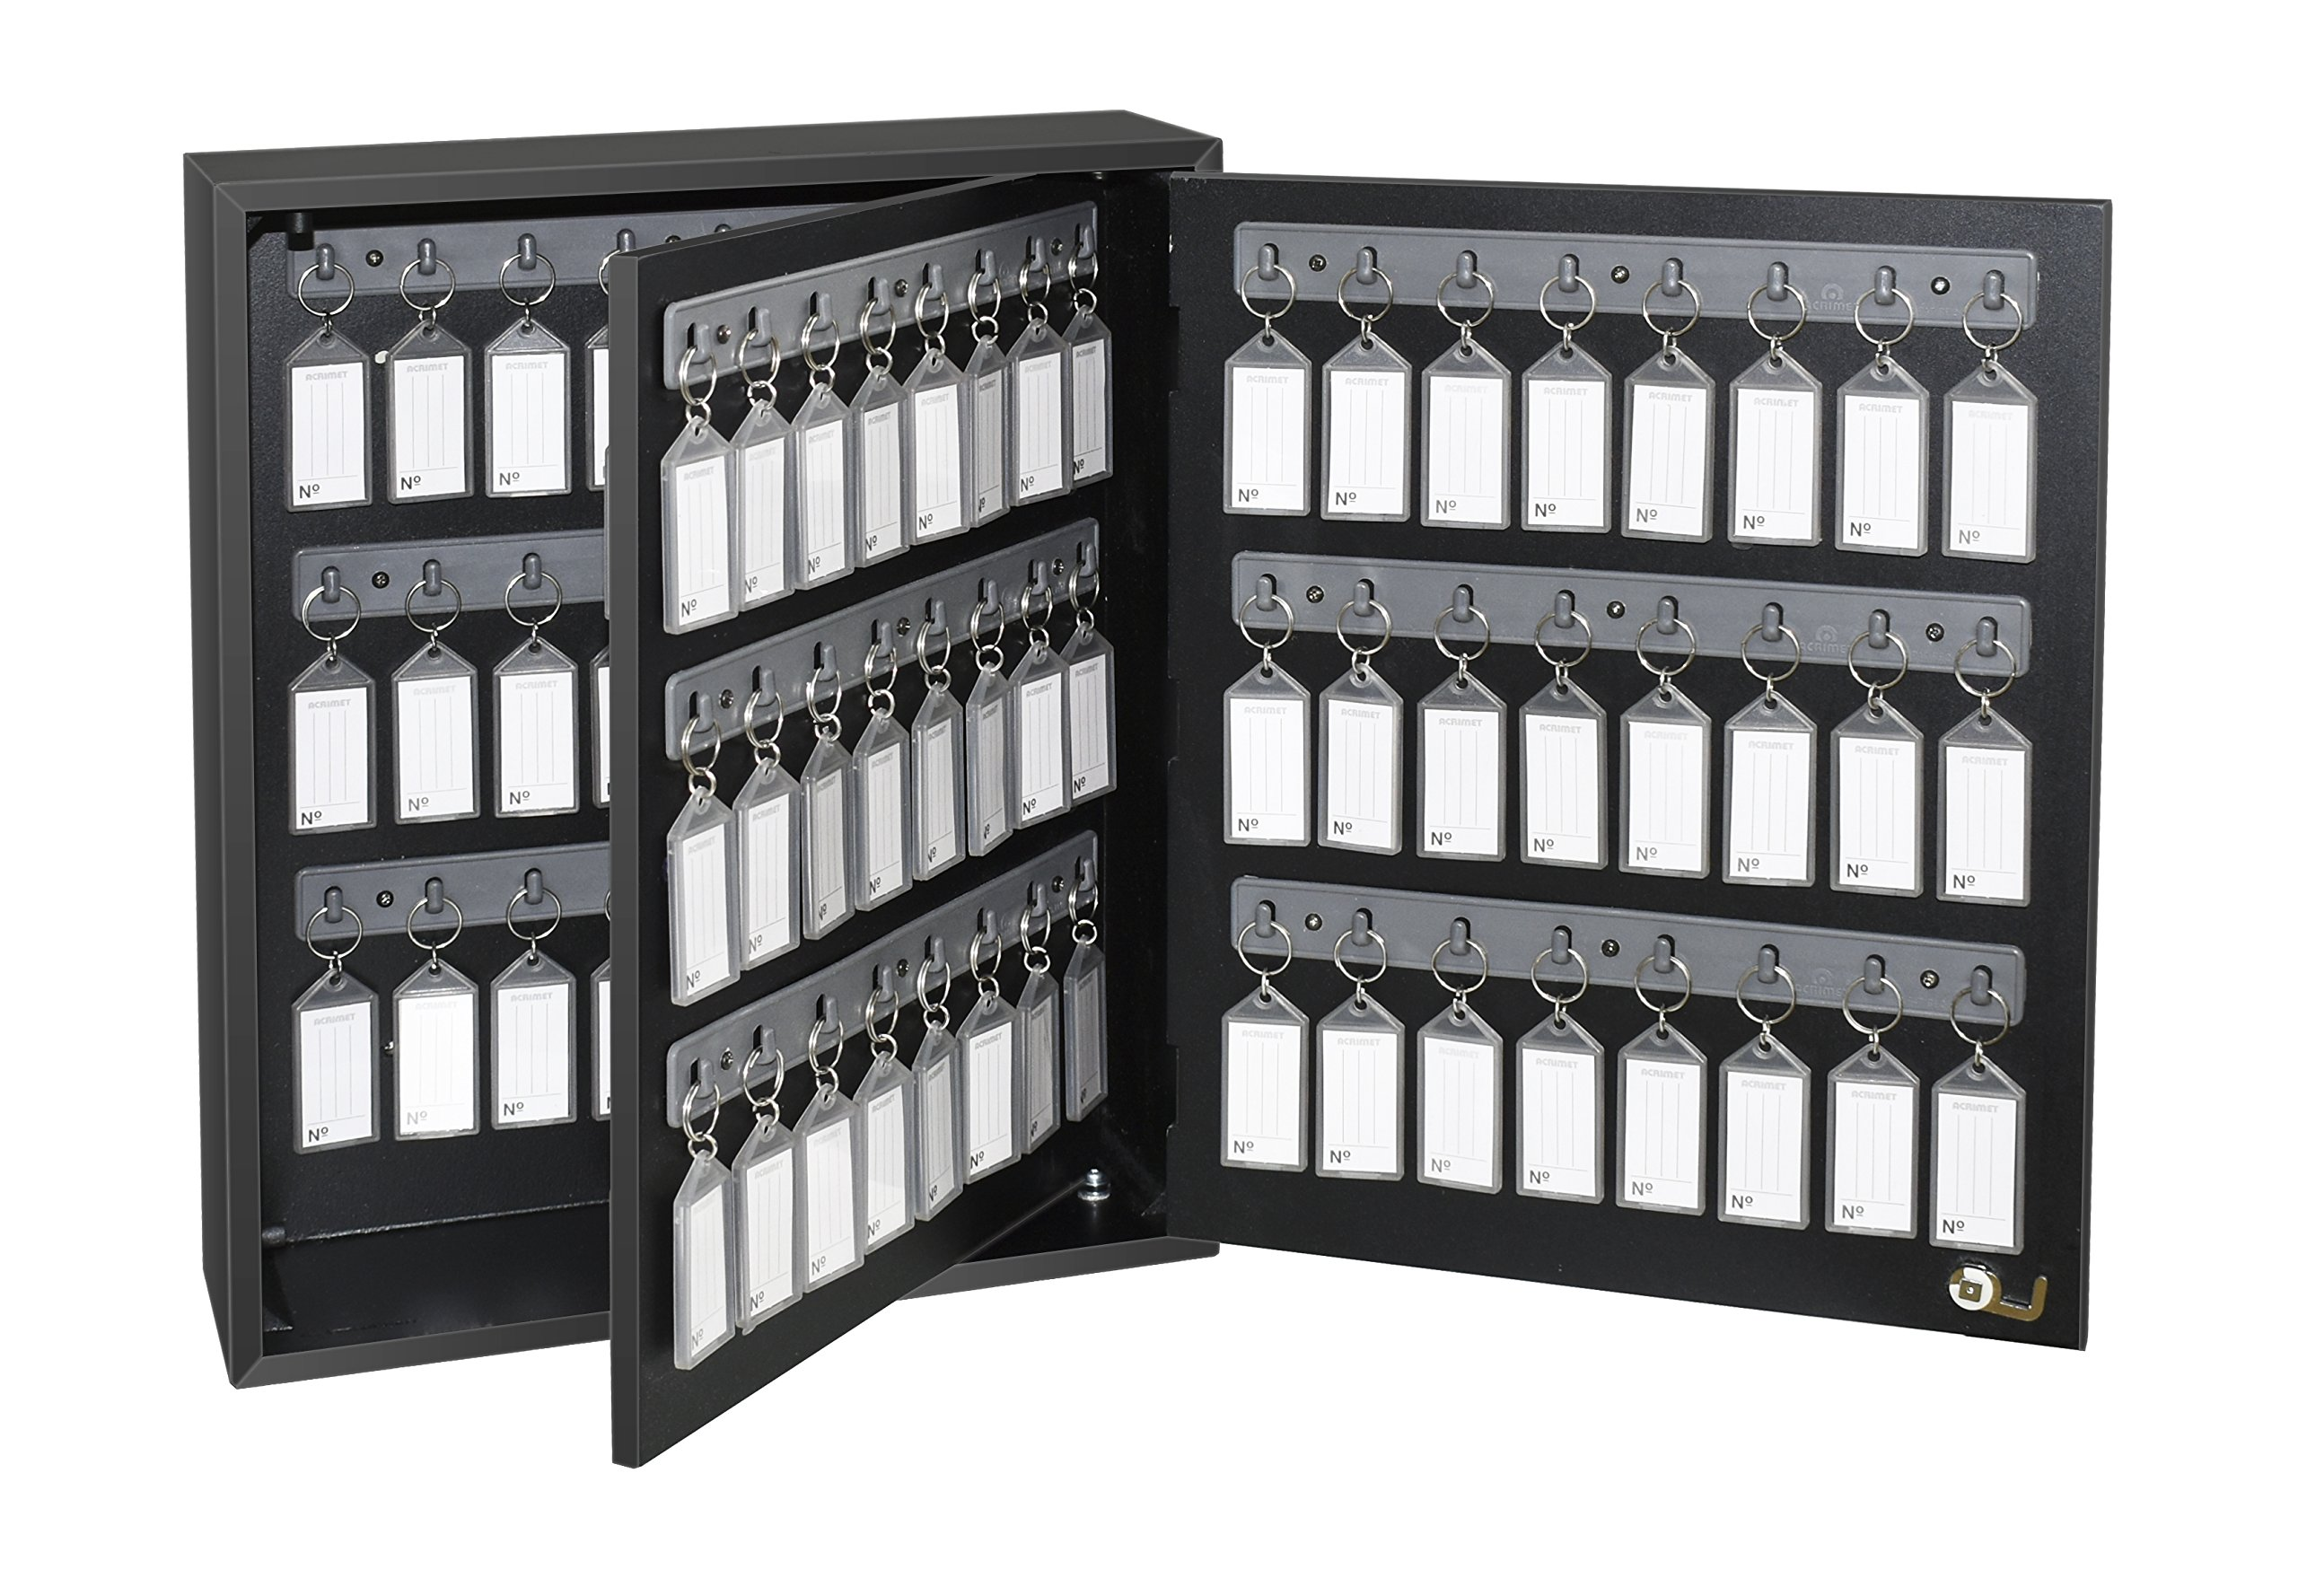 Acrimet Key Cabinet, 96 Positions, with 96 Key Tags (Black w/Smoke)